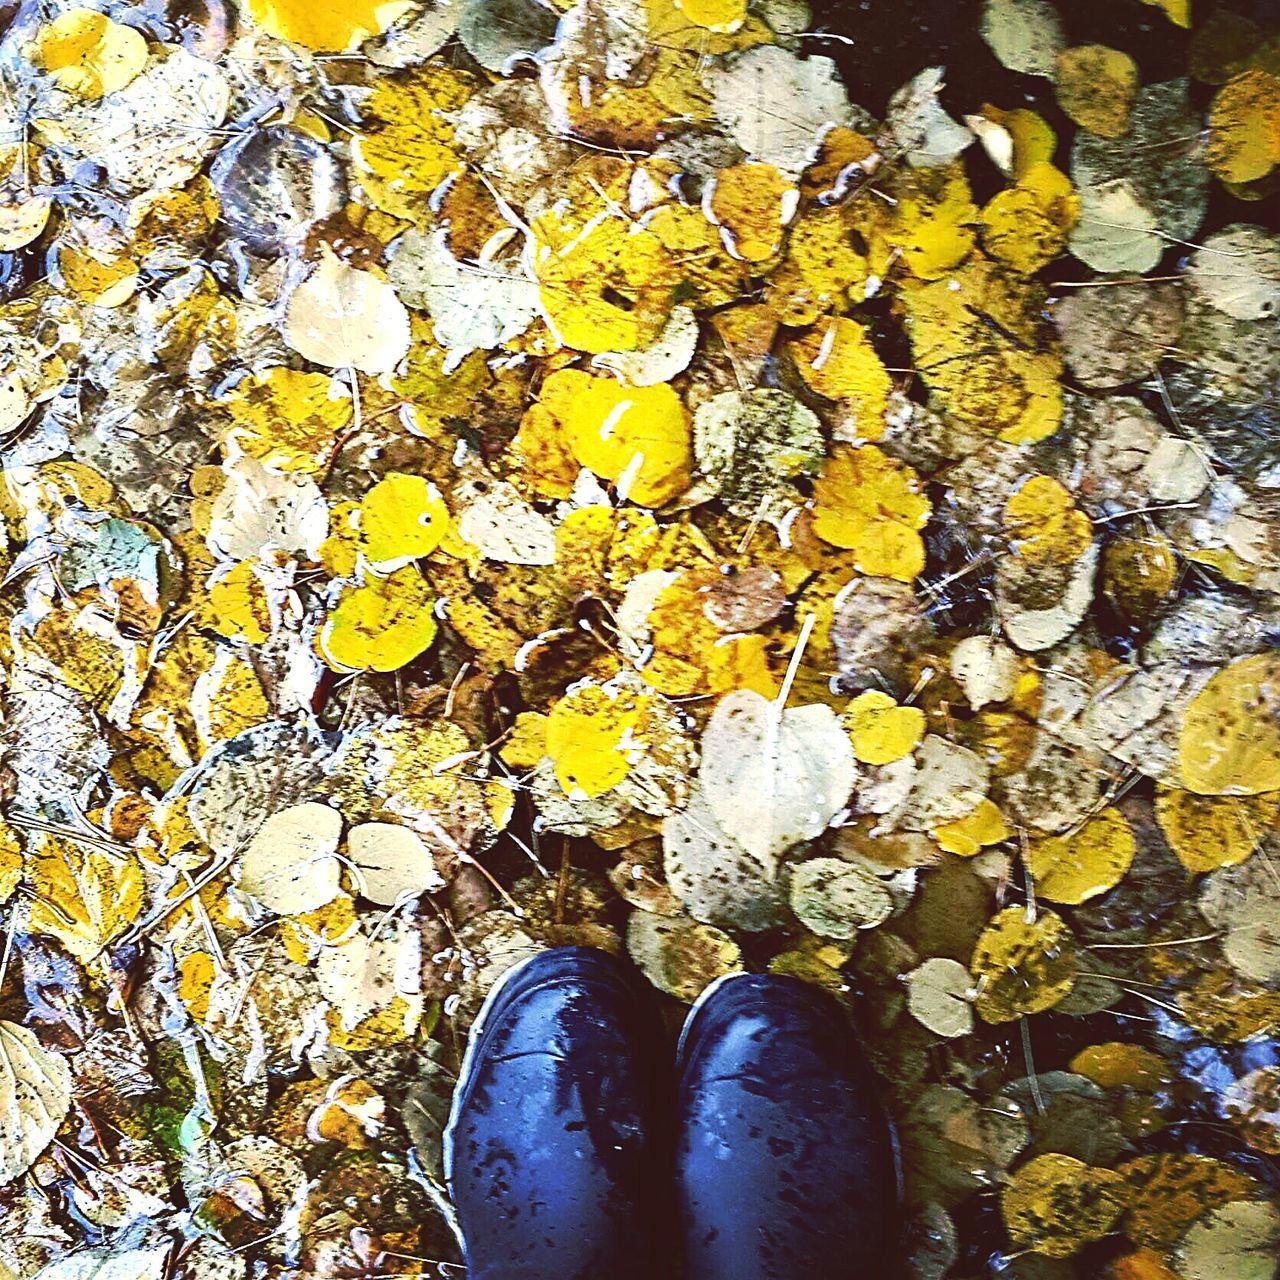 Standing Yellow Real People Lifestyles Directly Above Shoe High Angle View Personal Perspective Human Body Part Outdoors People Day Yellow Leaves Wellington Boots Autumn Colors